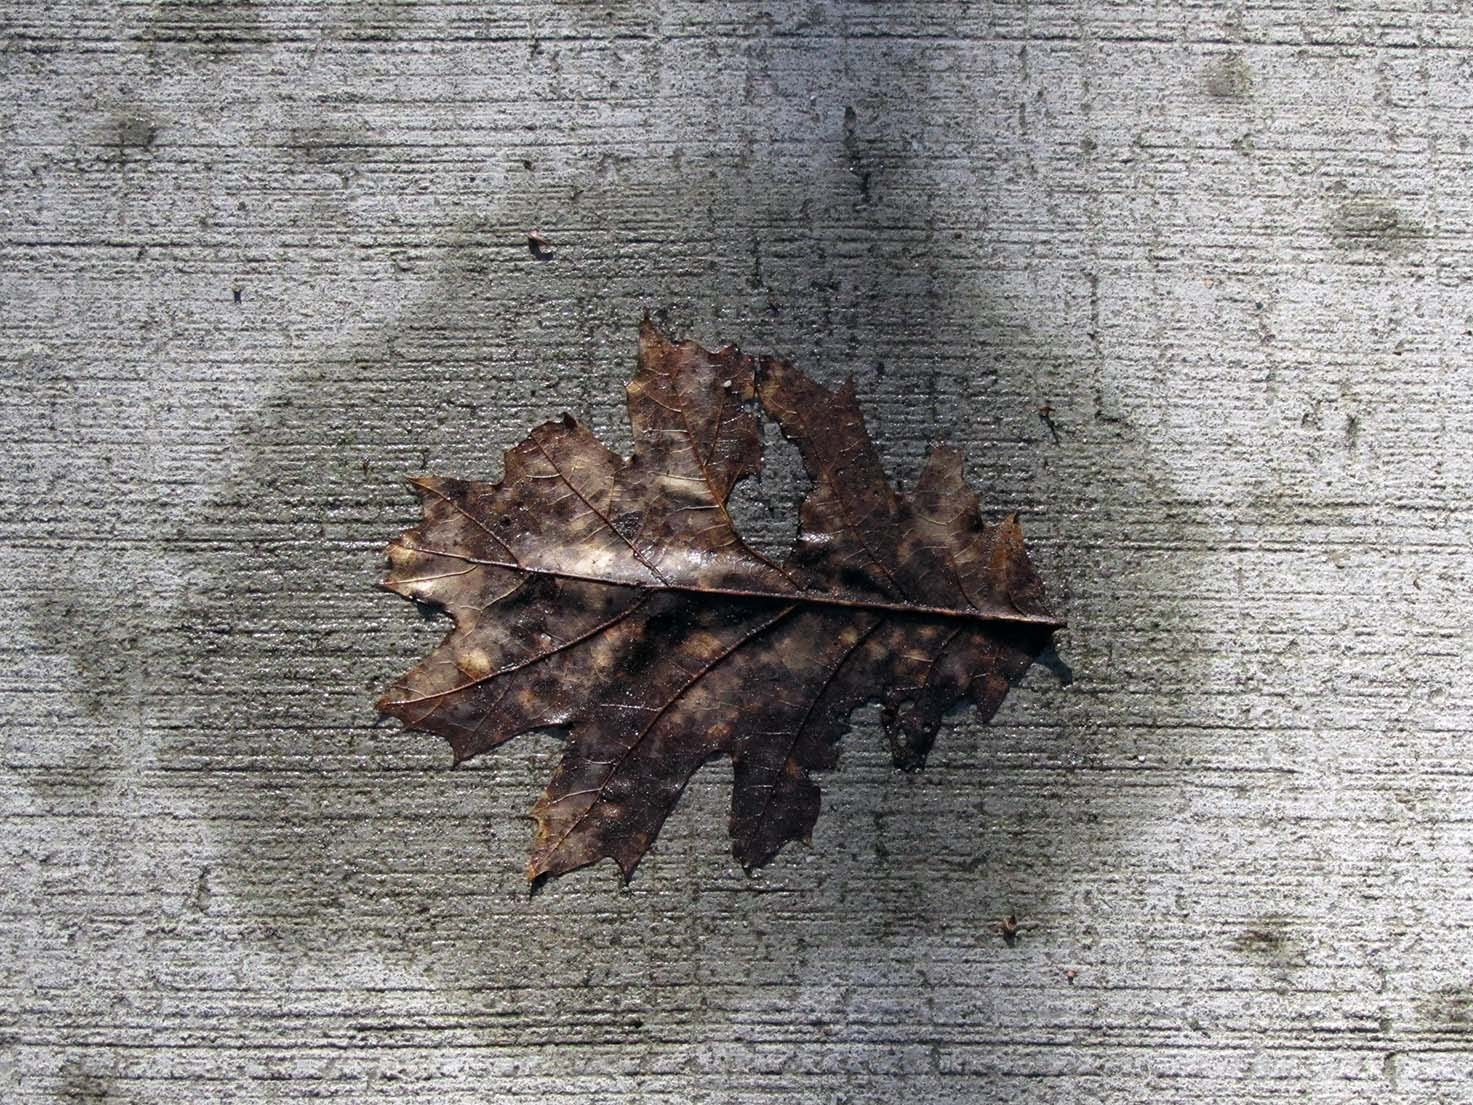 A leaf on a concrete path